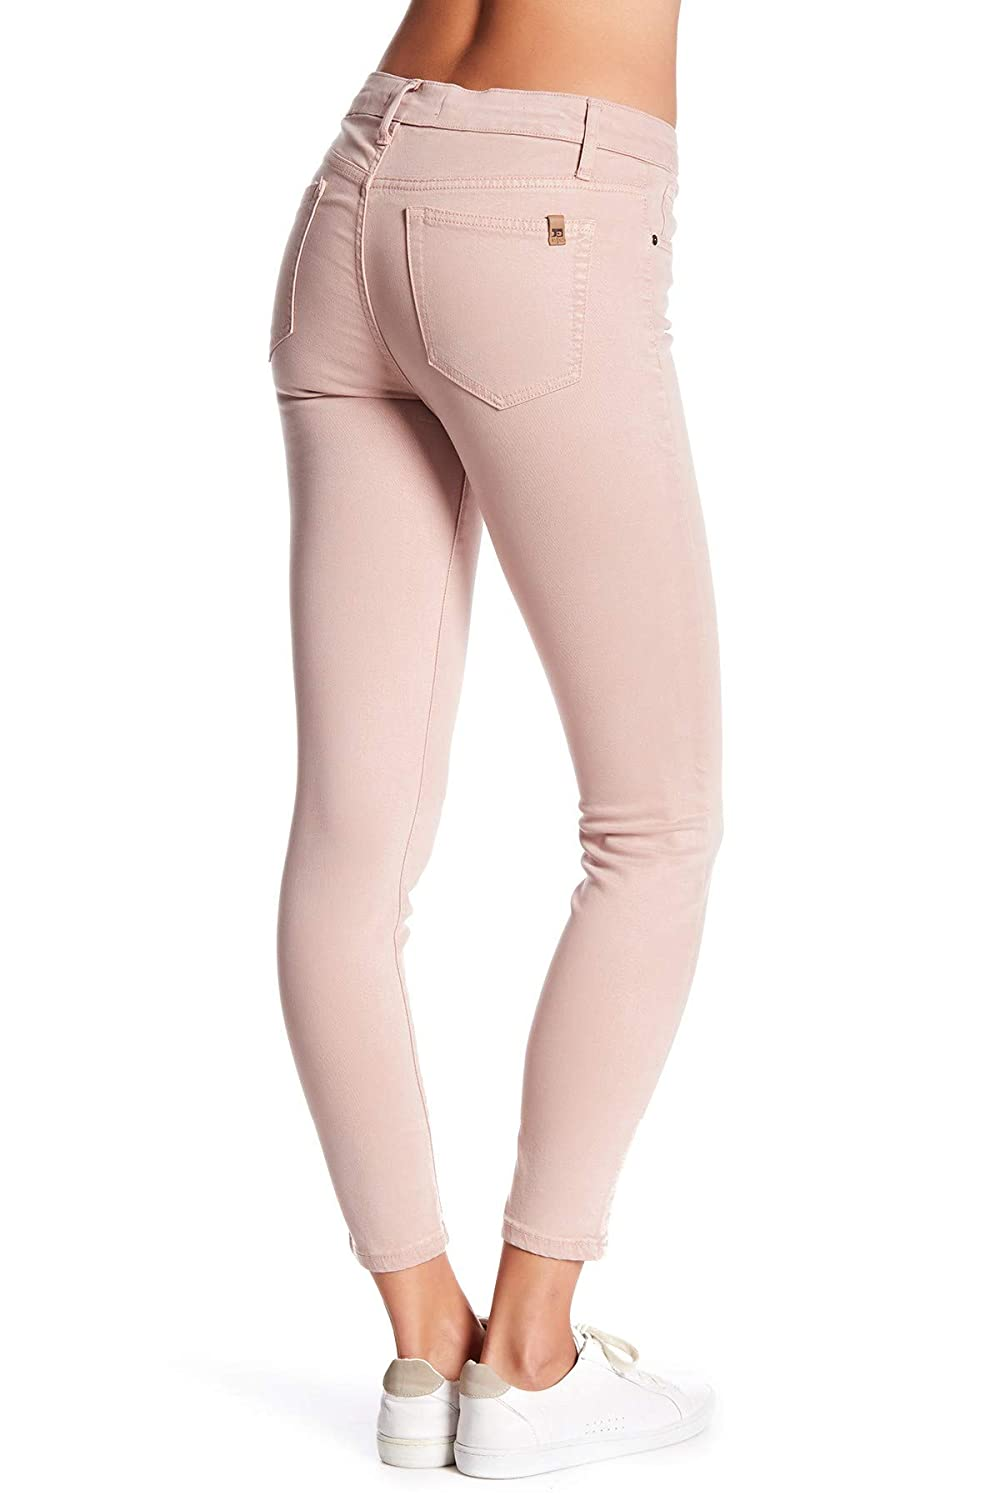 Joes Ballet Womens 31X27 Stretch Skinny Ankle Jeans